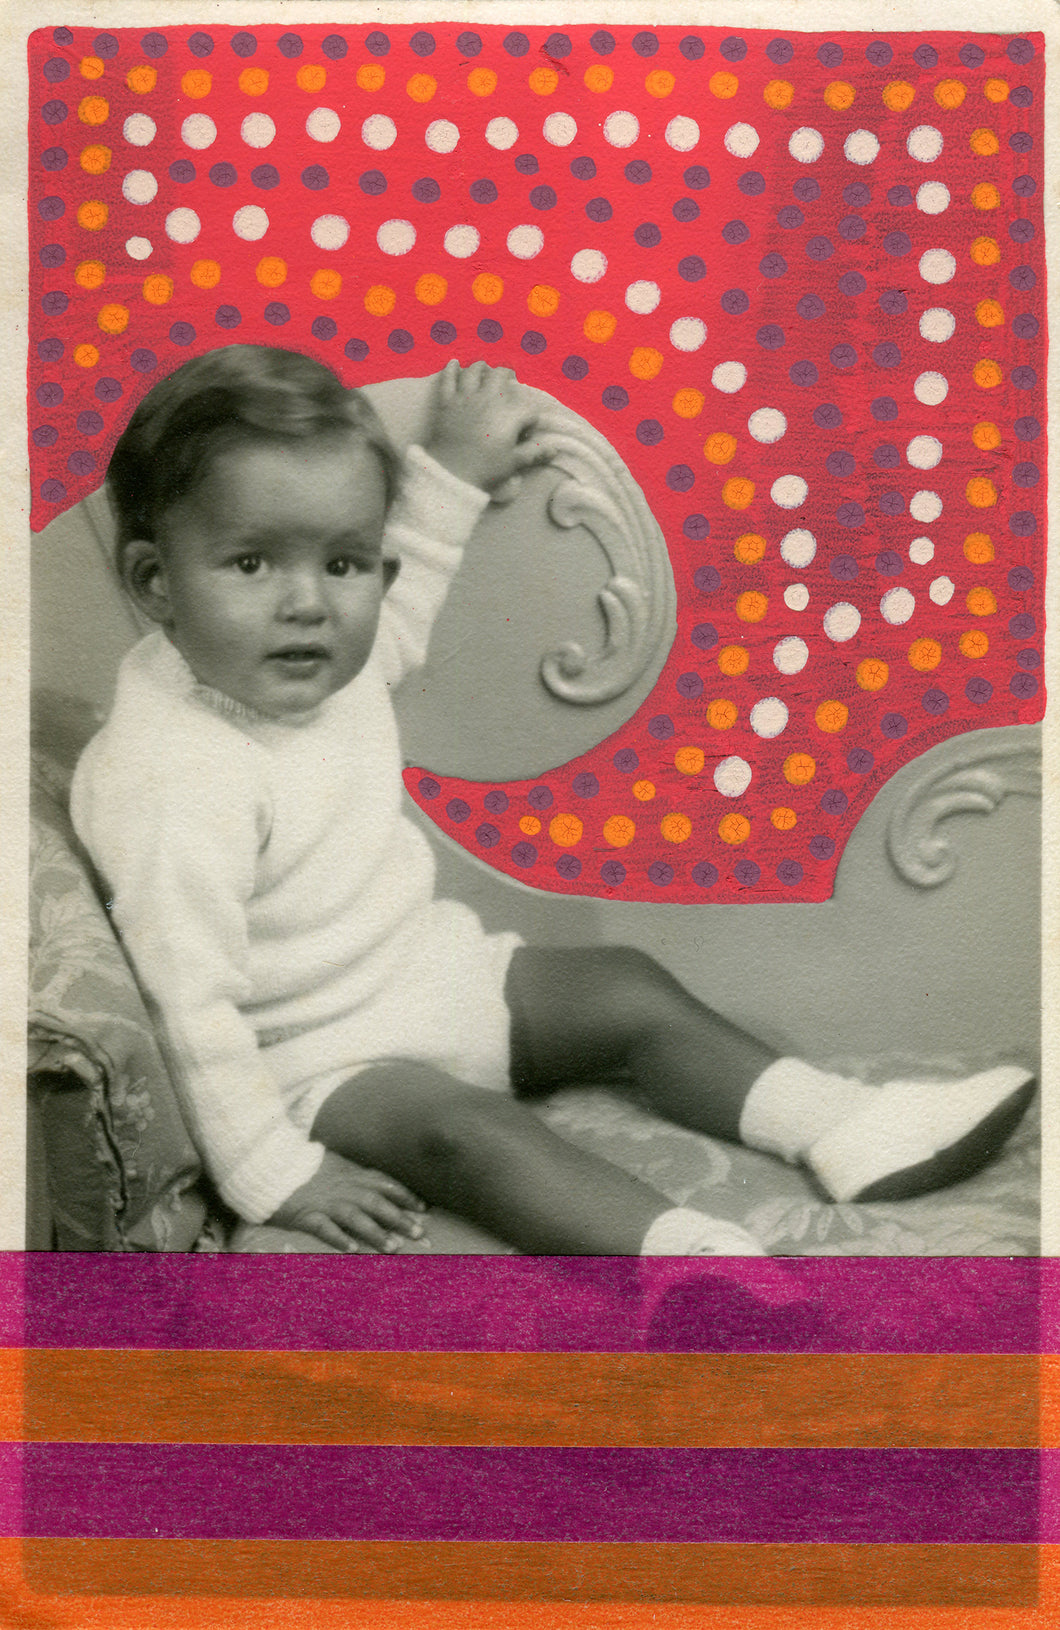 Vintage Baby Boy Portrait Photo Altered With Tape And Pens - Naomi Vona Art